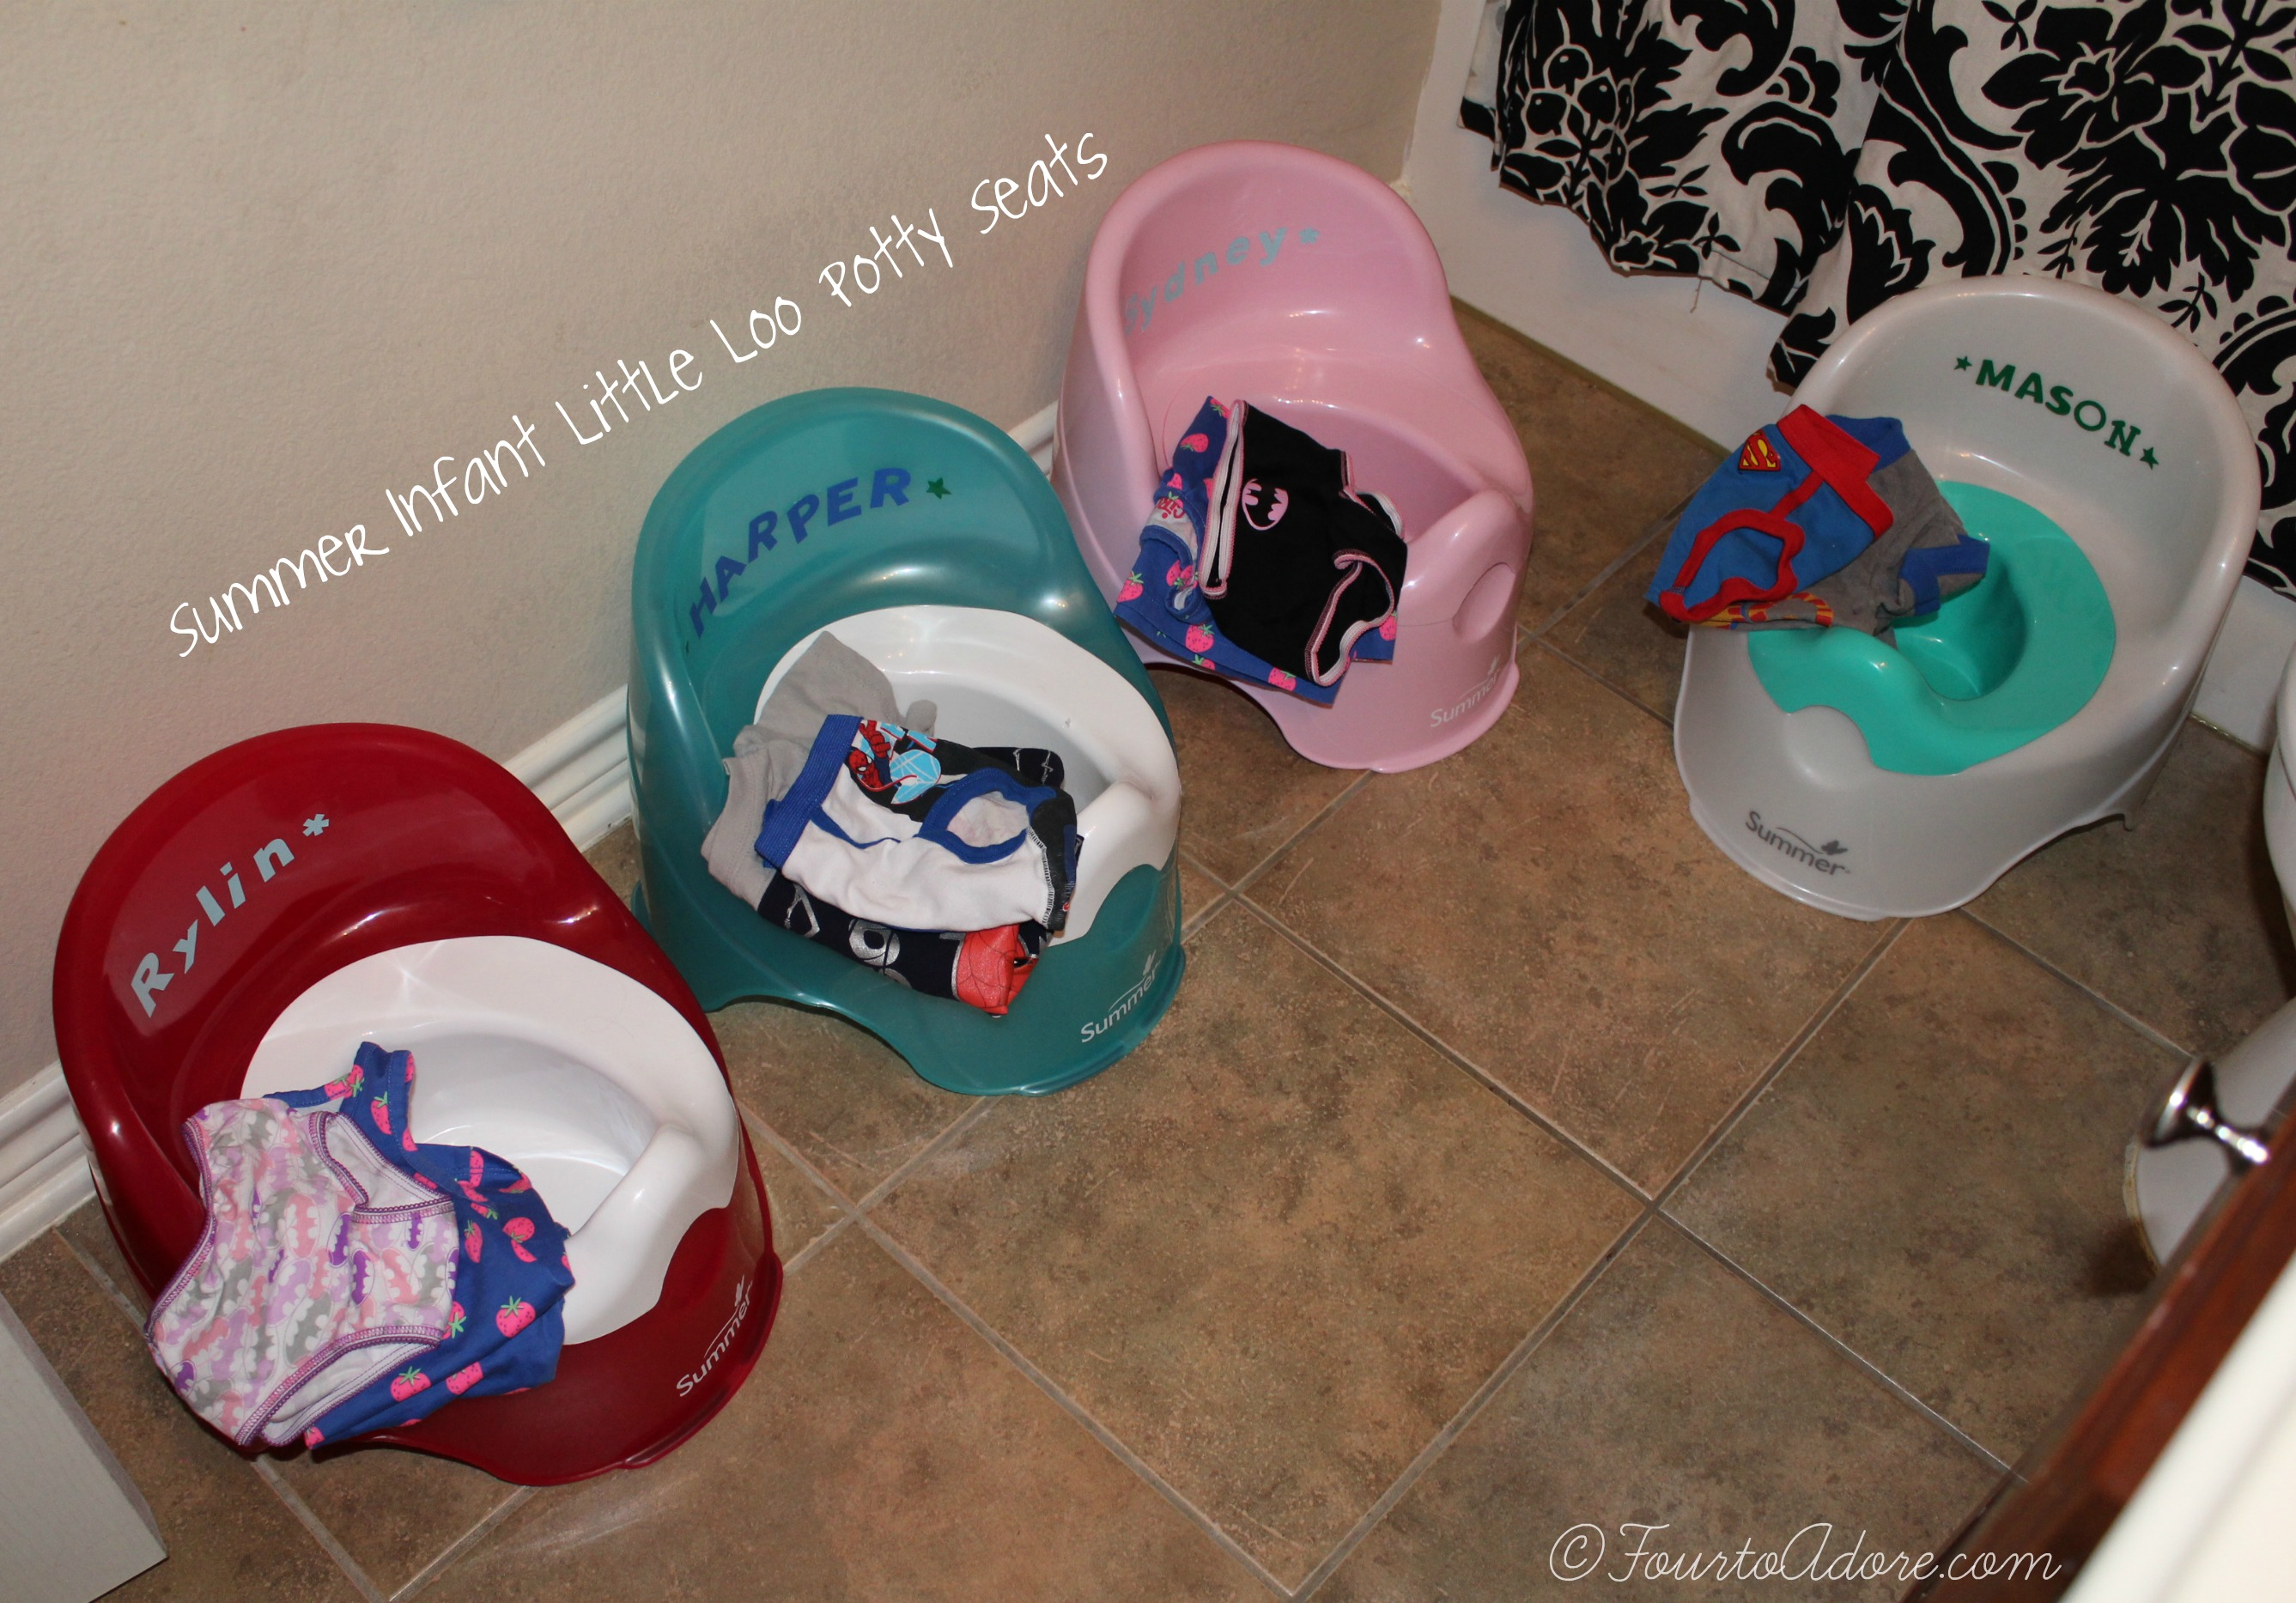 The Day I Quit Potty Training – Four to Adore